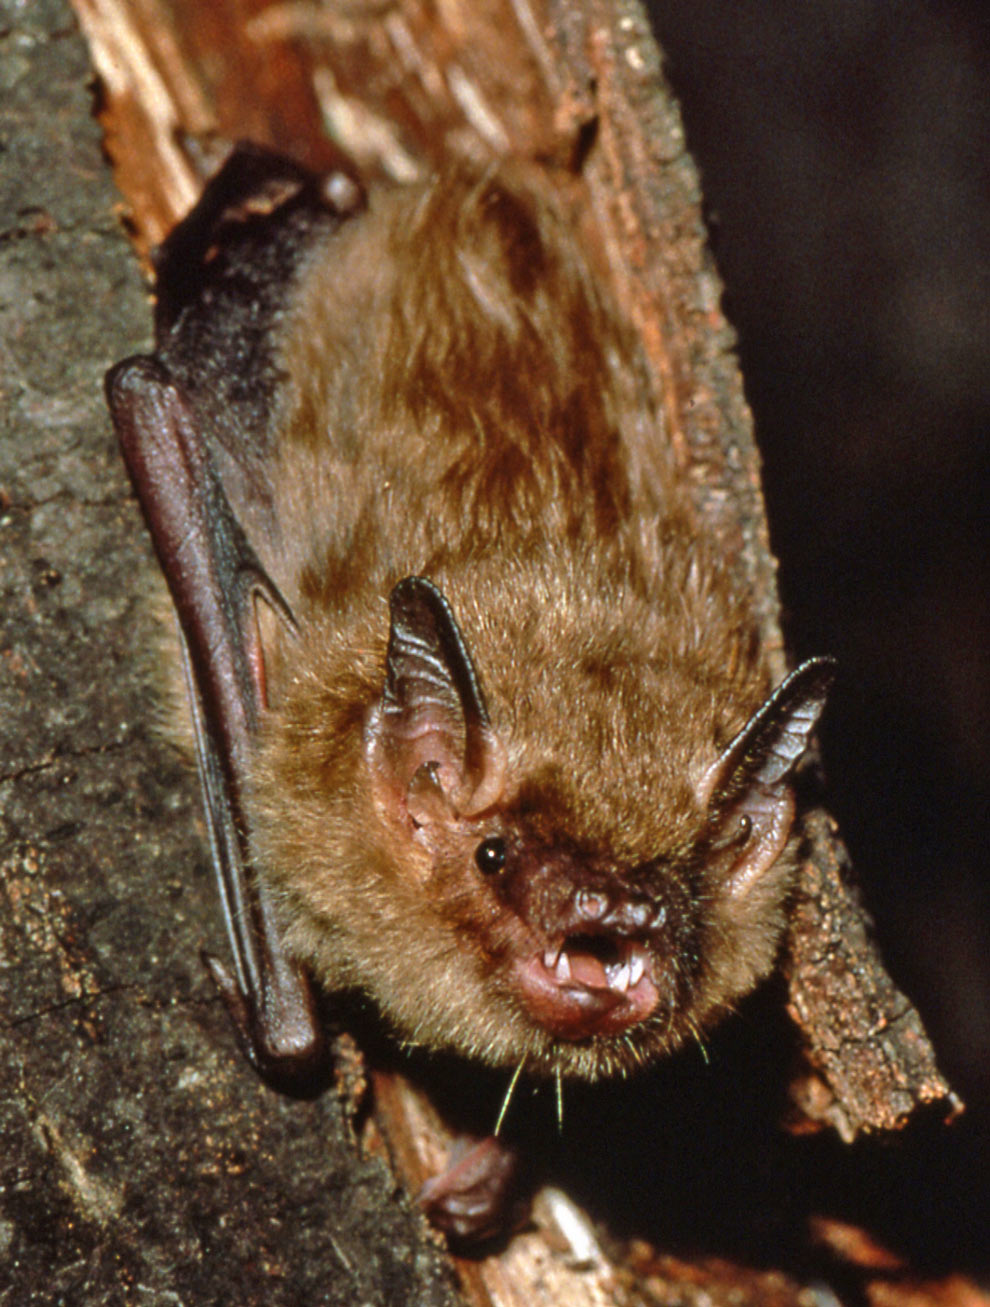 Close up photo of a big brown bat